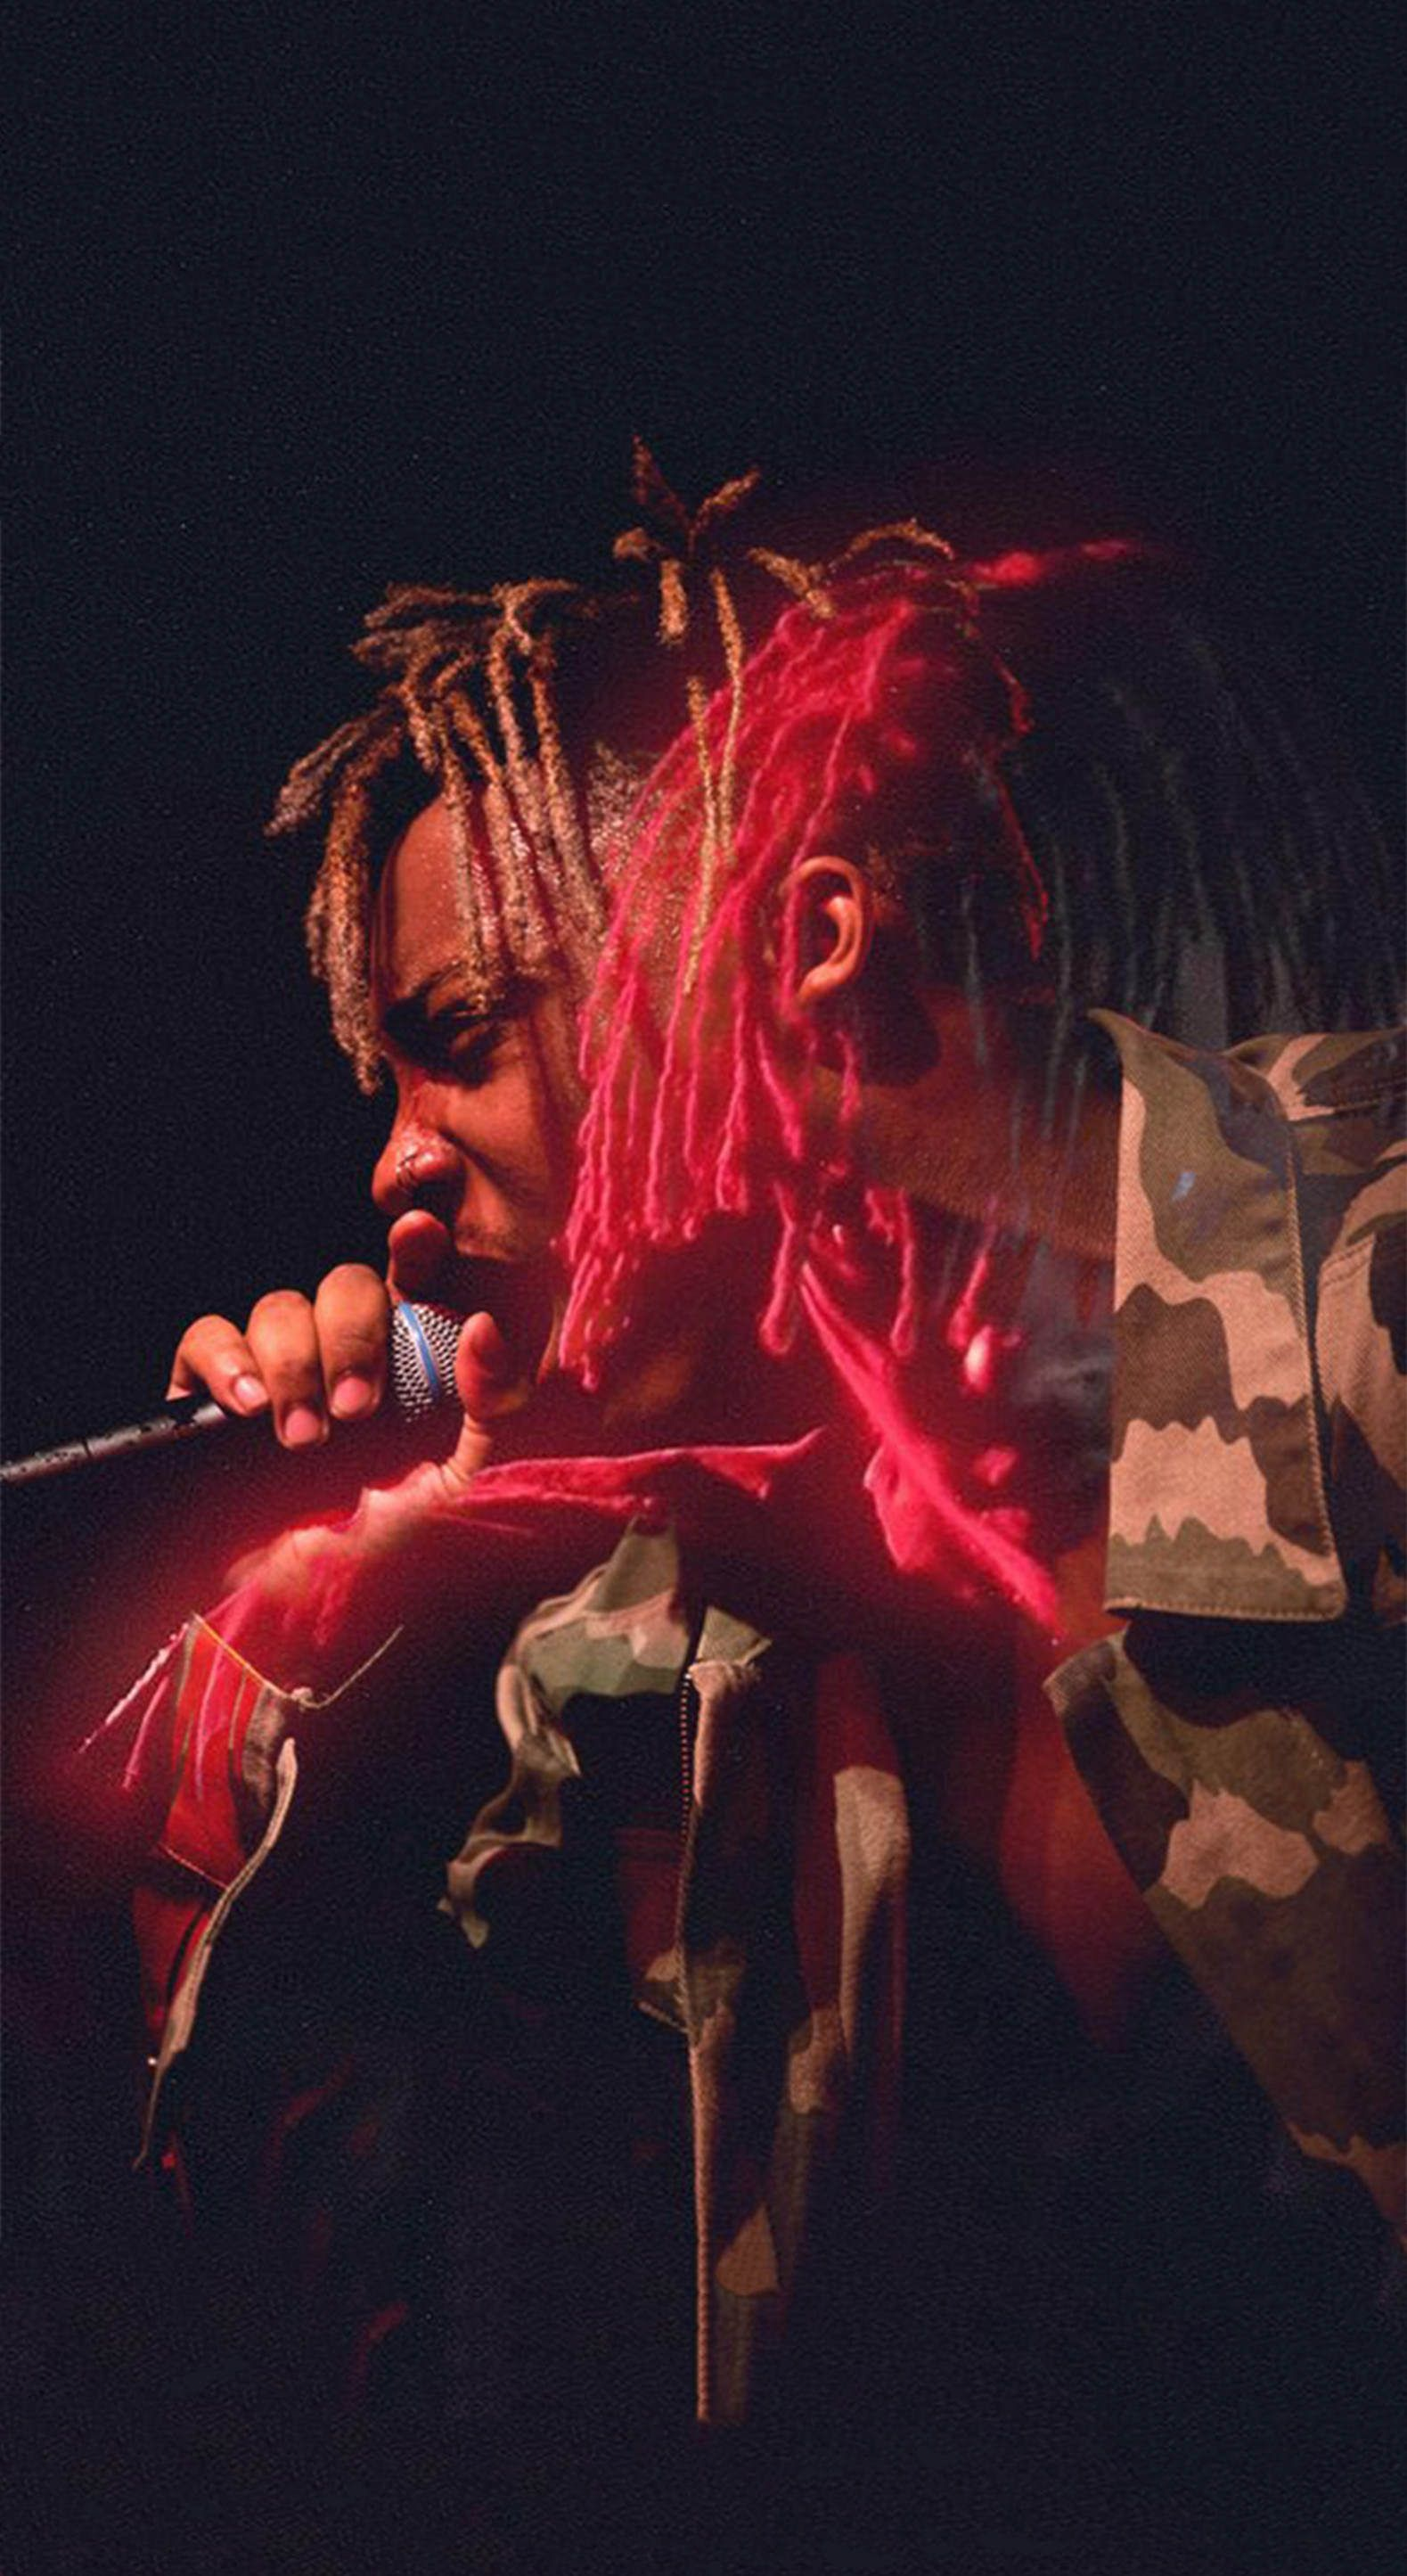 50+ Juice Wrld Wallpapers Download at WallpaperBro in